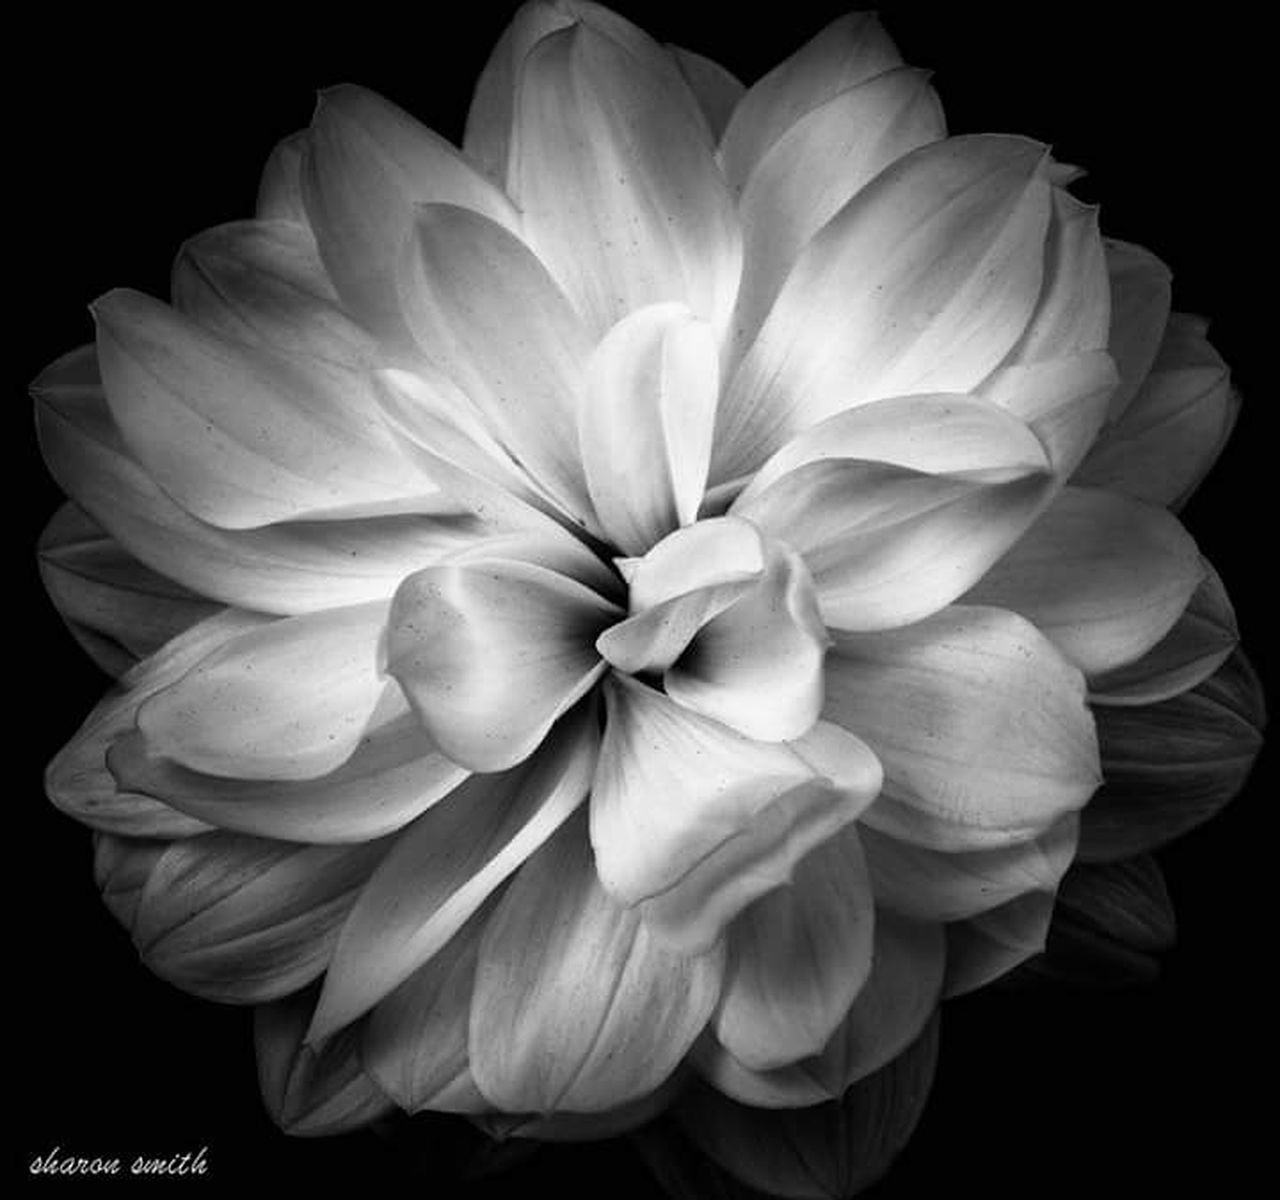 flower, petal, beauty in nature, nature, flower head, fragility, growth, plant, black background, no people, blooming, studio shot, close-up, freshness, outdoors, day